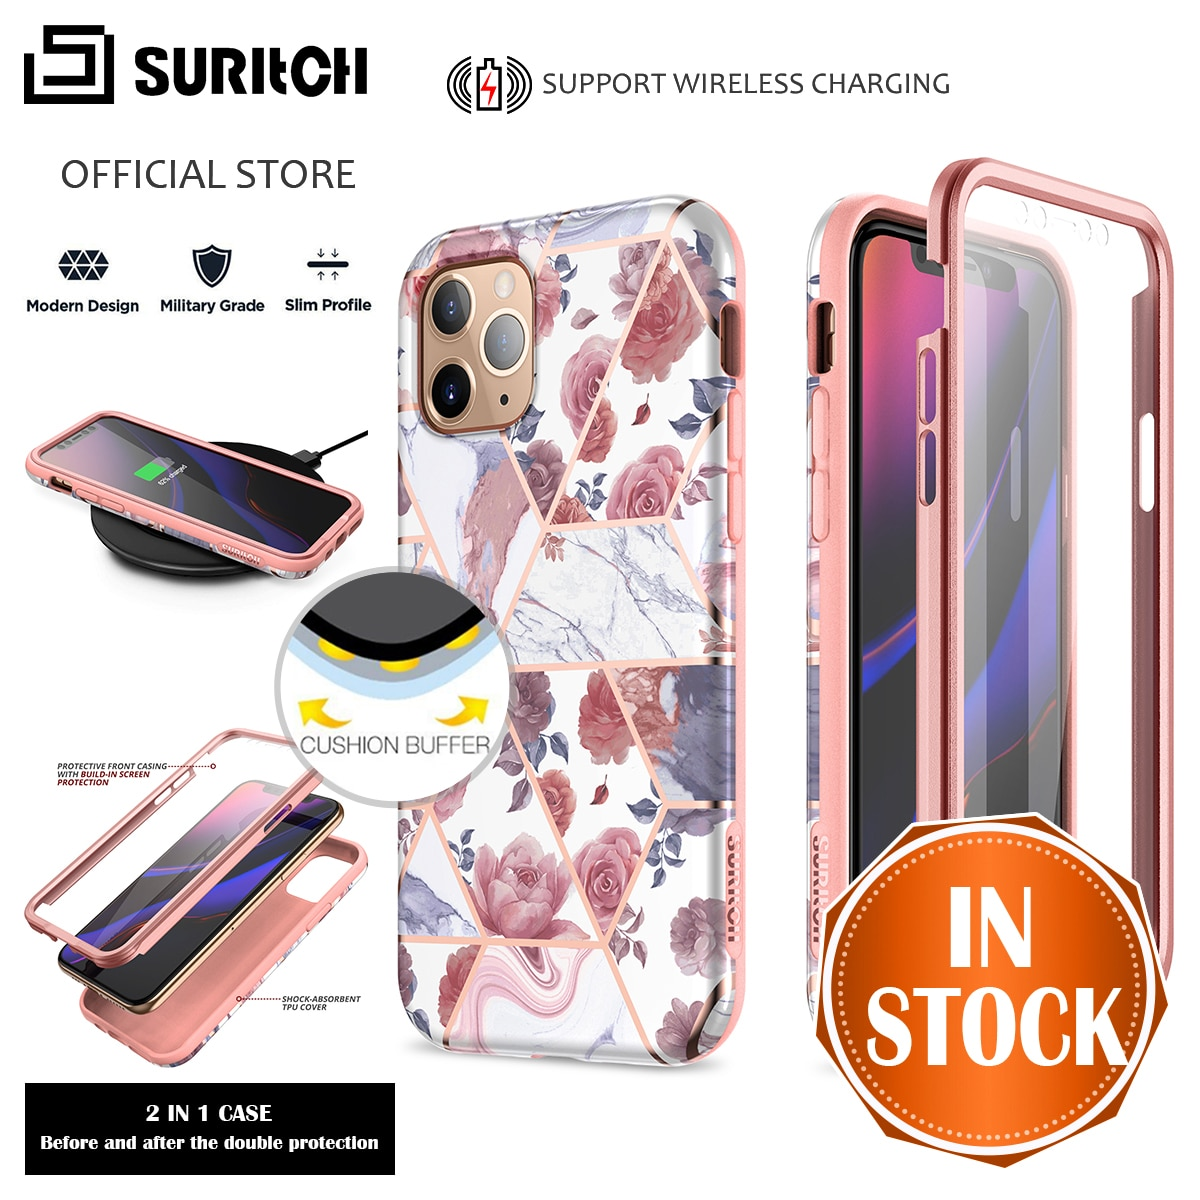 Luxury Full Protect Case For iPhone 11 Pro Max Case For iPhone 6 7 8 Plus X Xs Max XR Cover With Screen Protector 360 Capa Hard